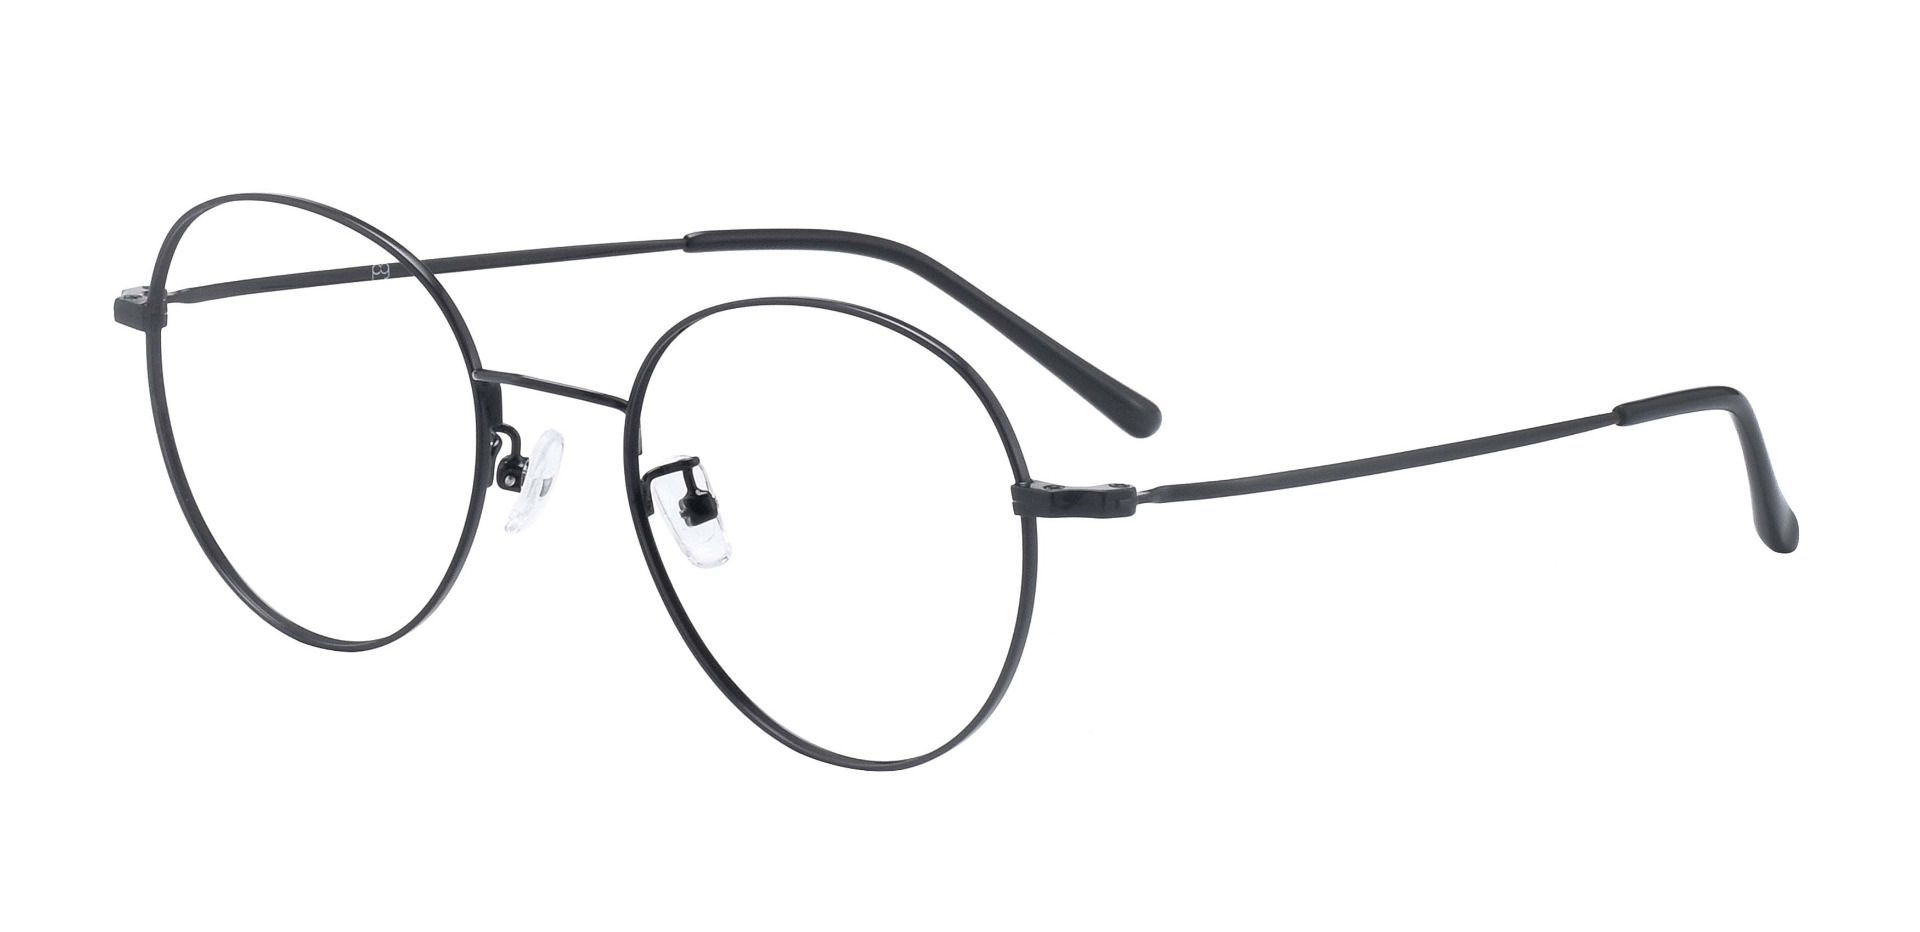 Spade Round Prescription Glasses - Black